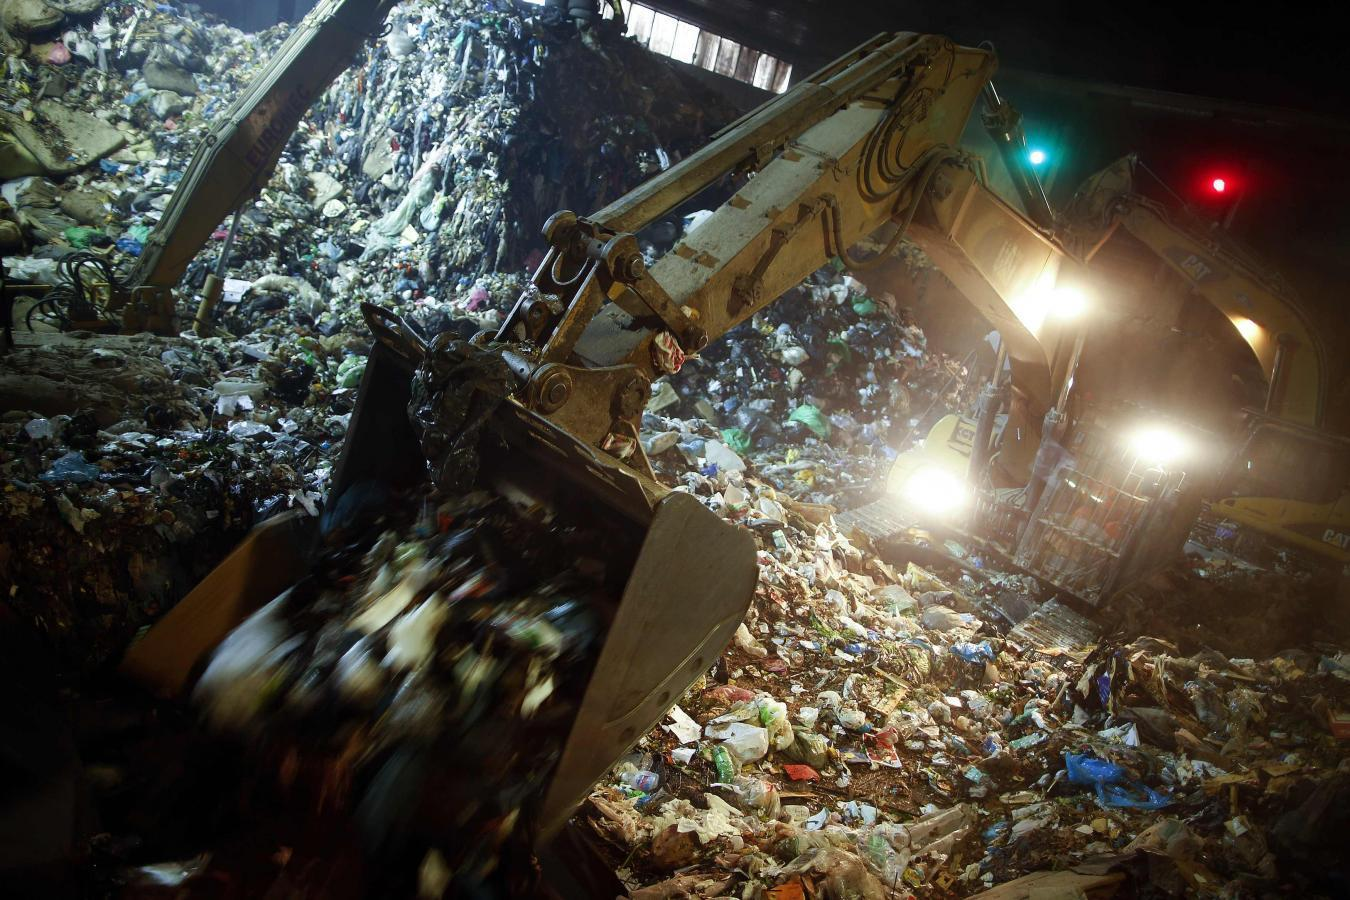 Italy's woeful waste management on trial with Il Supremo